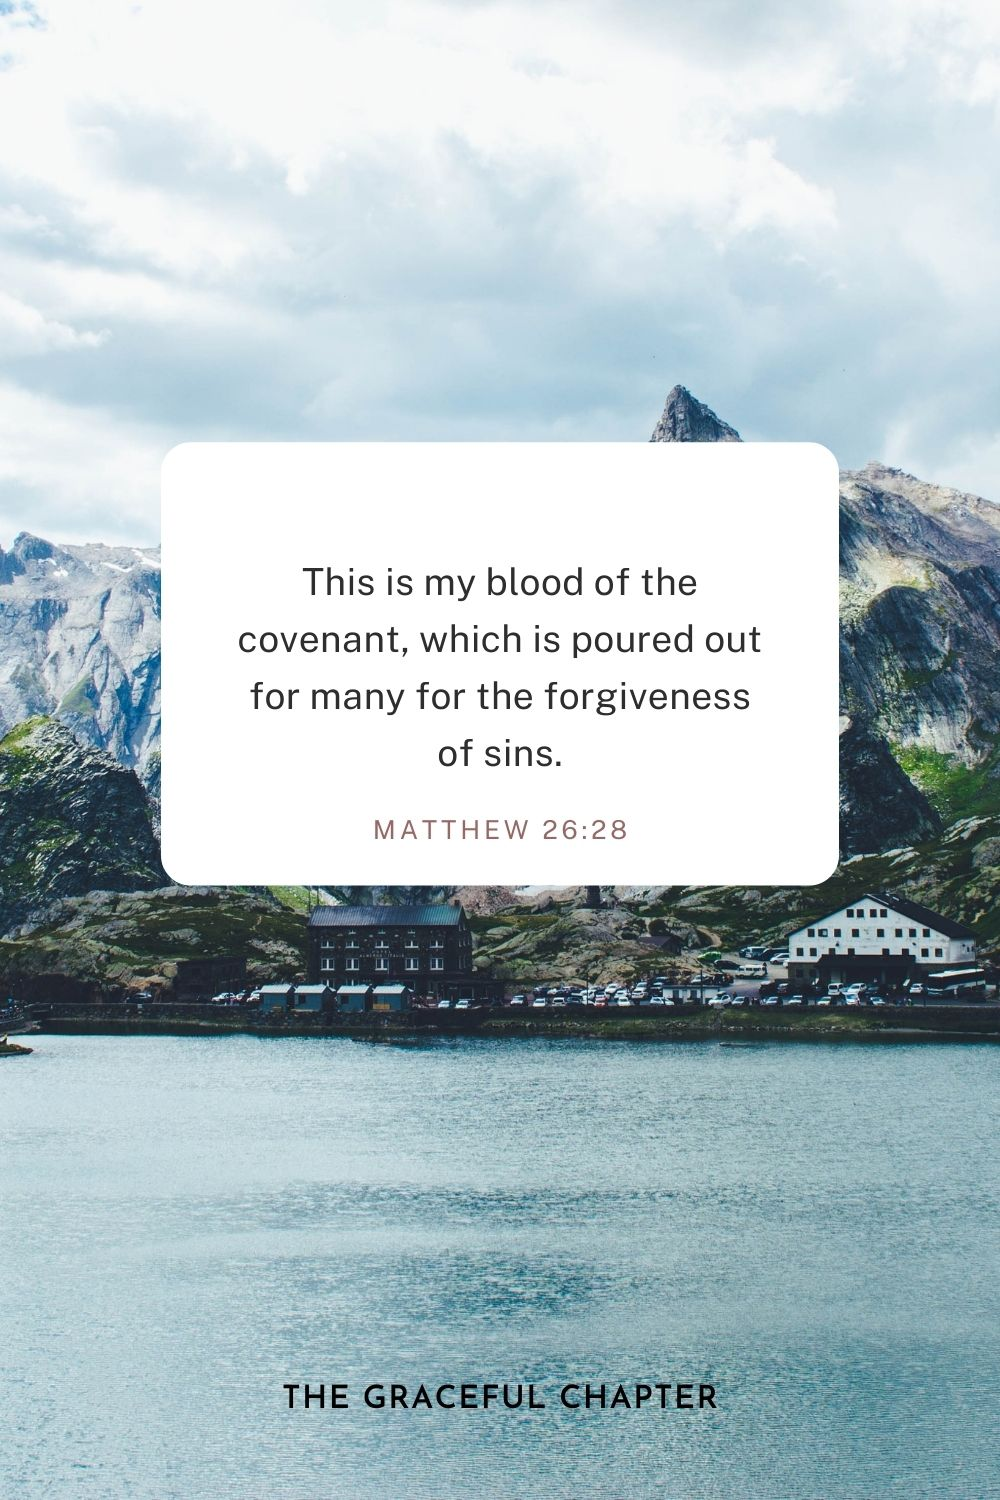 This is my blood of the covenant, which is poured out for many for the forgiveness of sins. Matthew 26:28